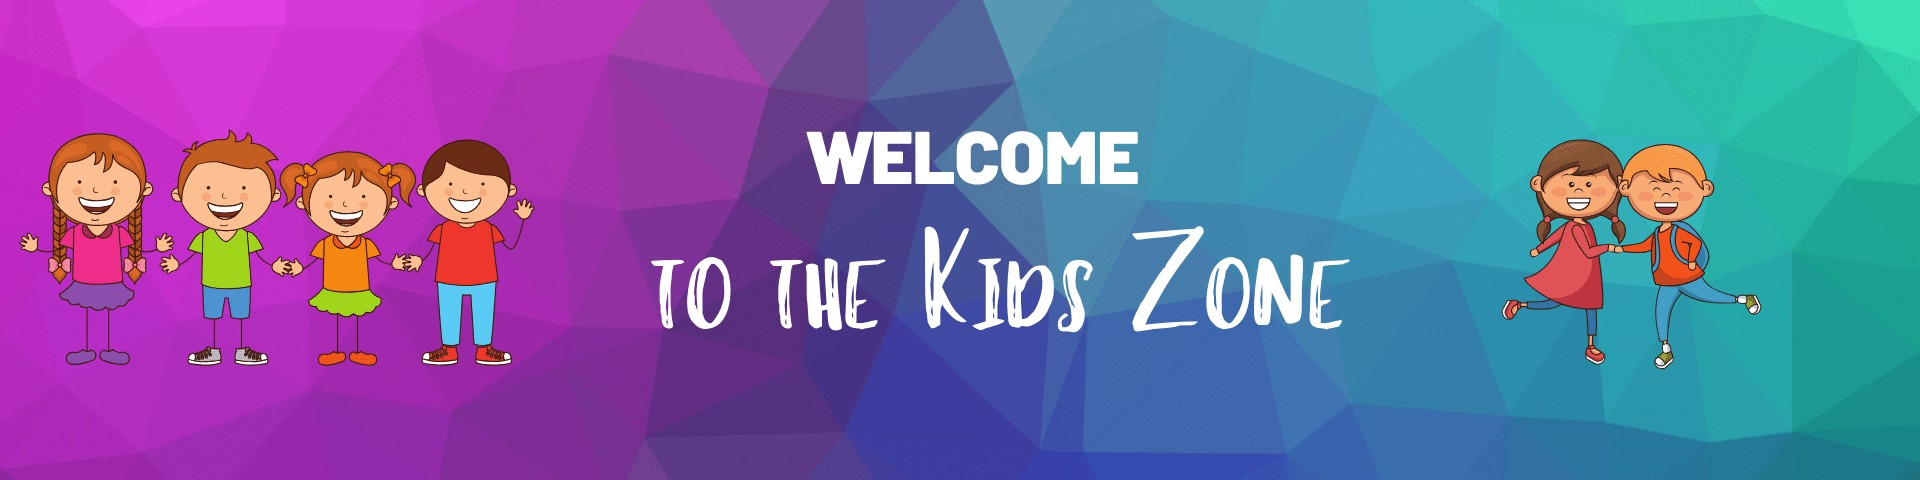 Kids Zone Sign